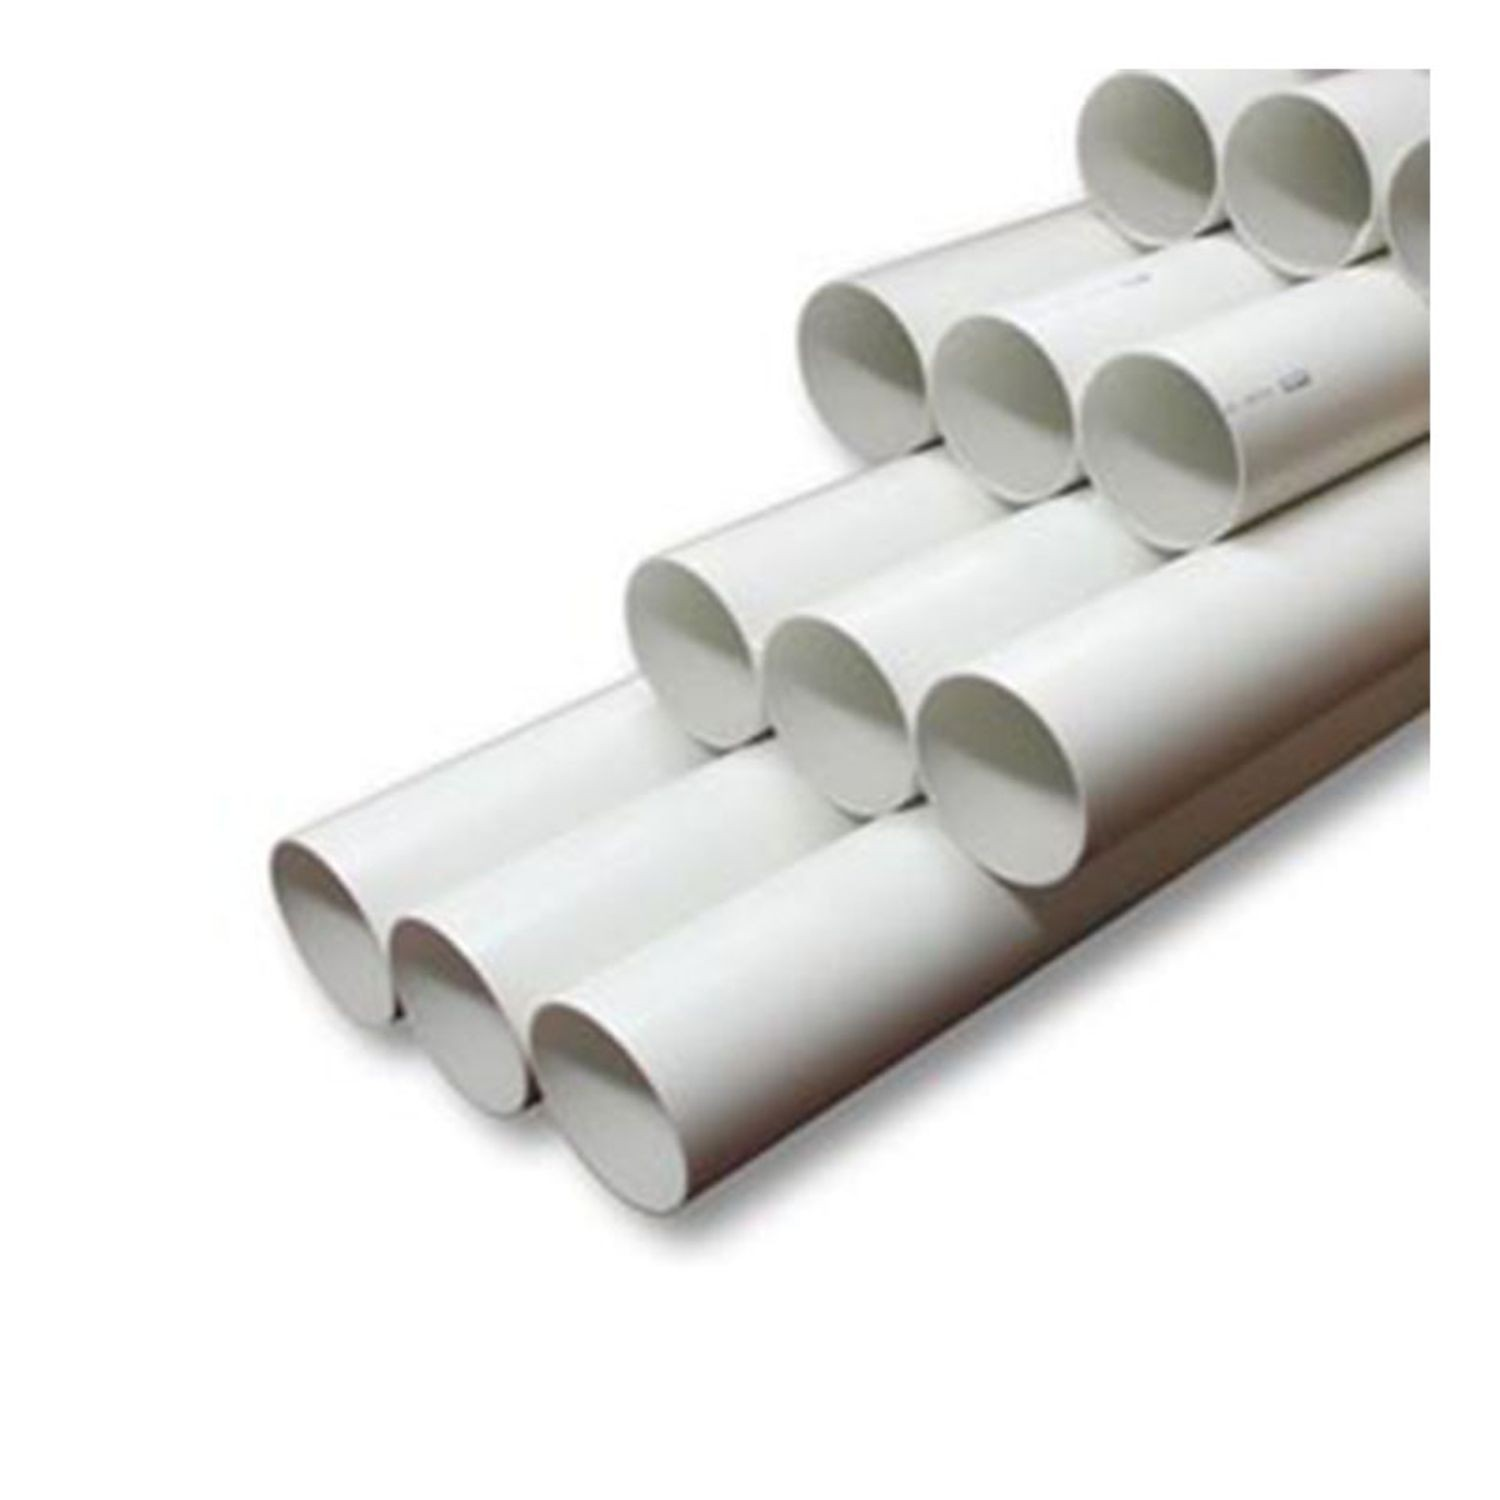 Cresline - 8  X 20u0027 PVC Pipe With Bell End  sc 1 st  Reinders & Cresline - 8